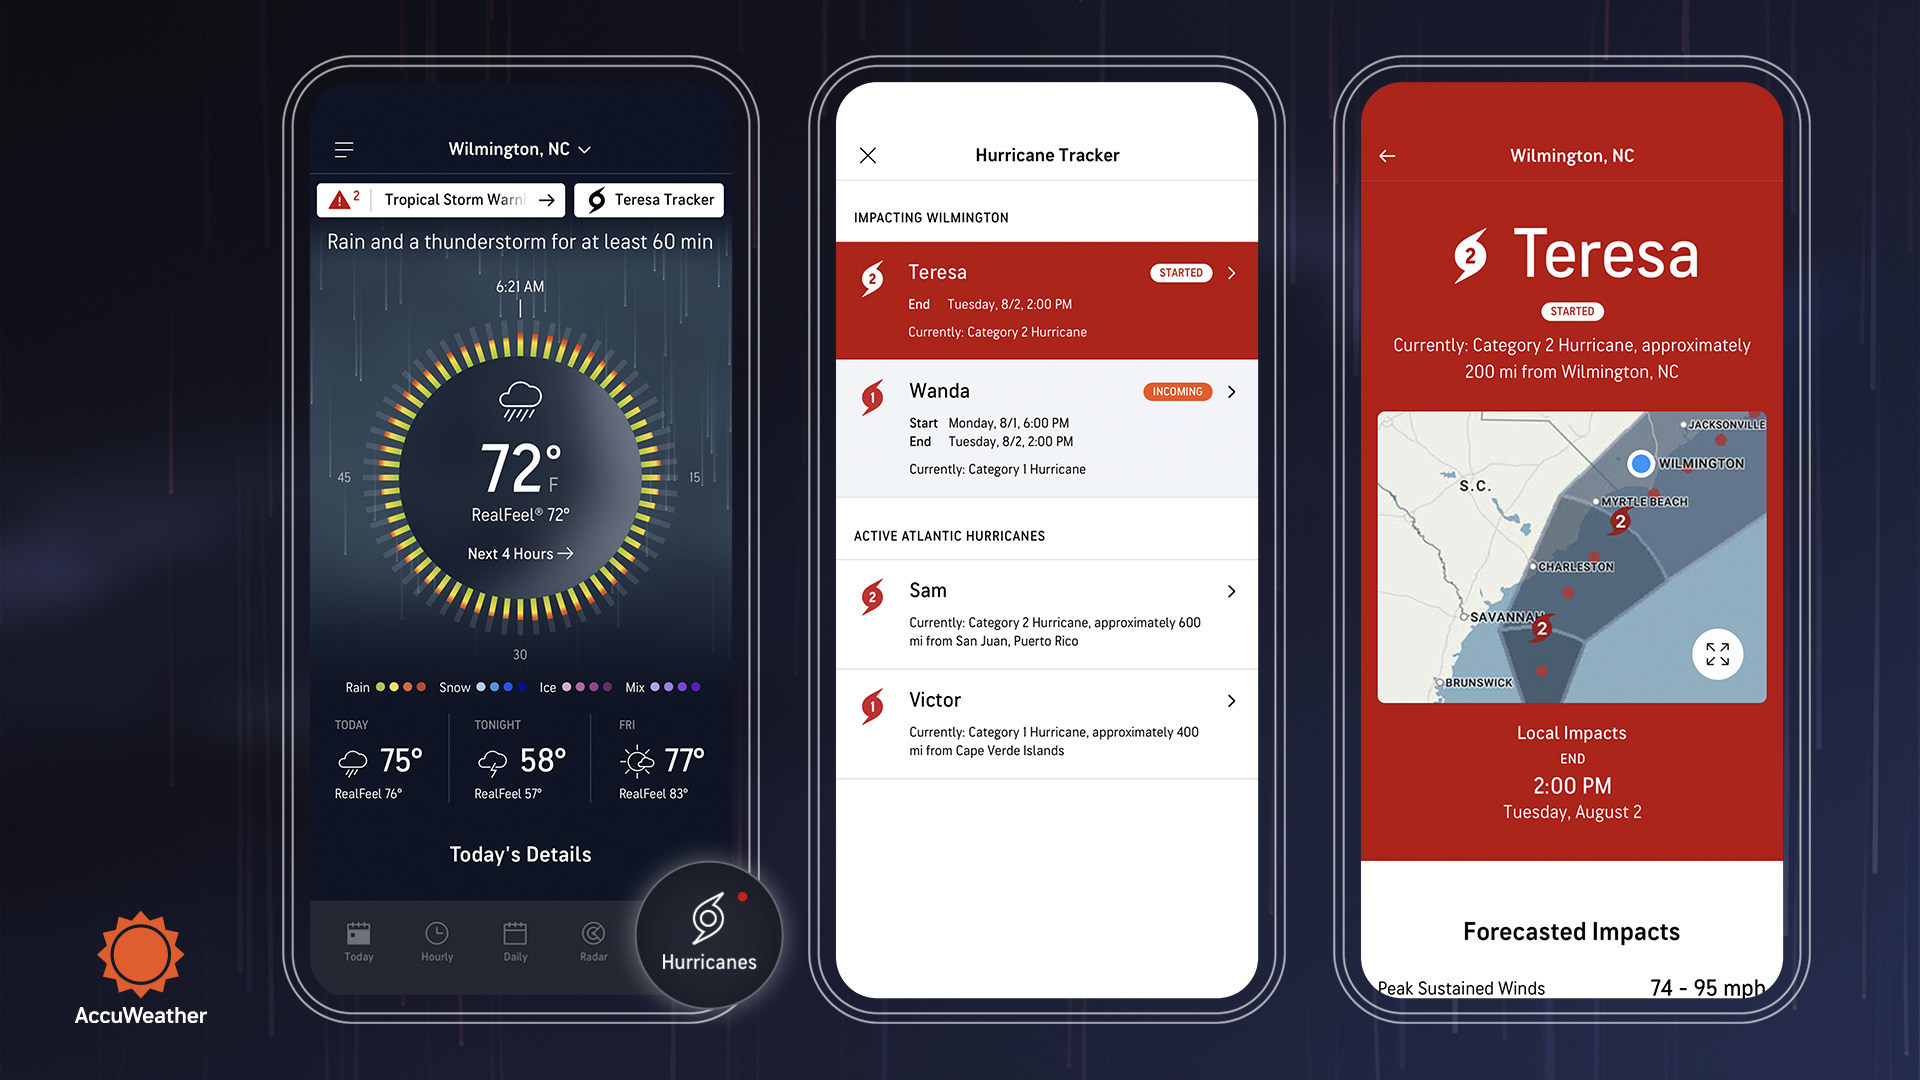 AccuWeather Launches Digital Hurricane Tracker In App and Online to Coincide with Above-Normal 2021 Hurricane Season